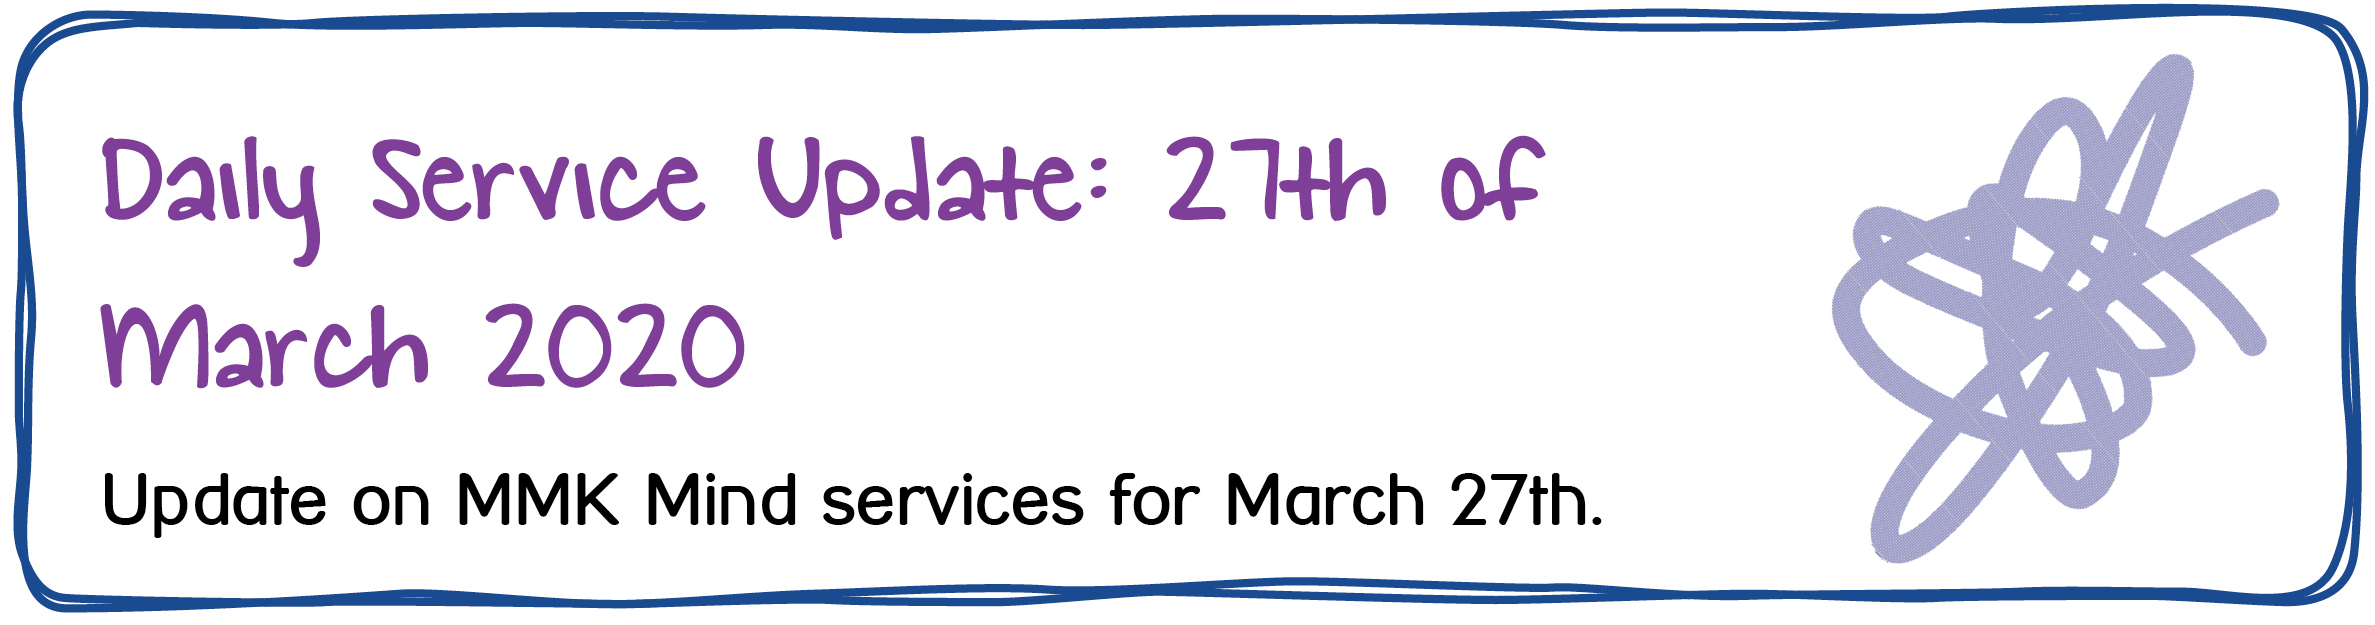 Daily Service Update: 27th of March 2020